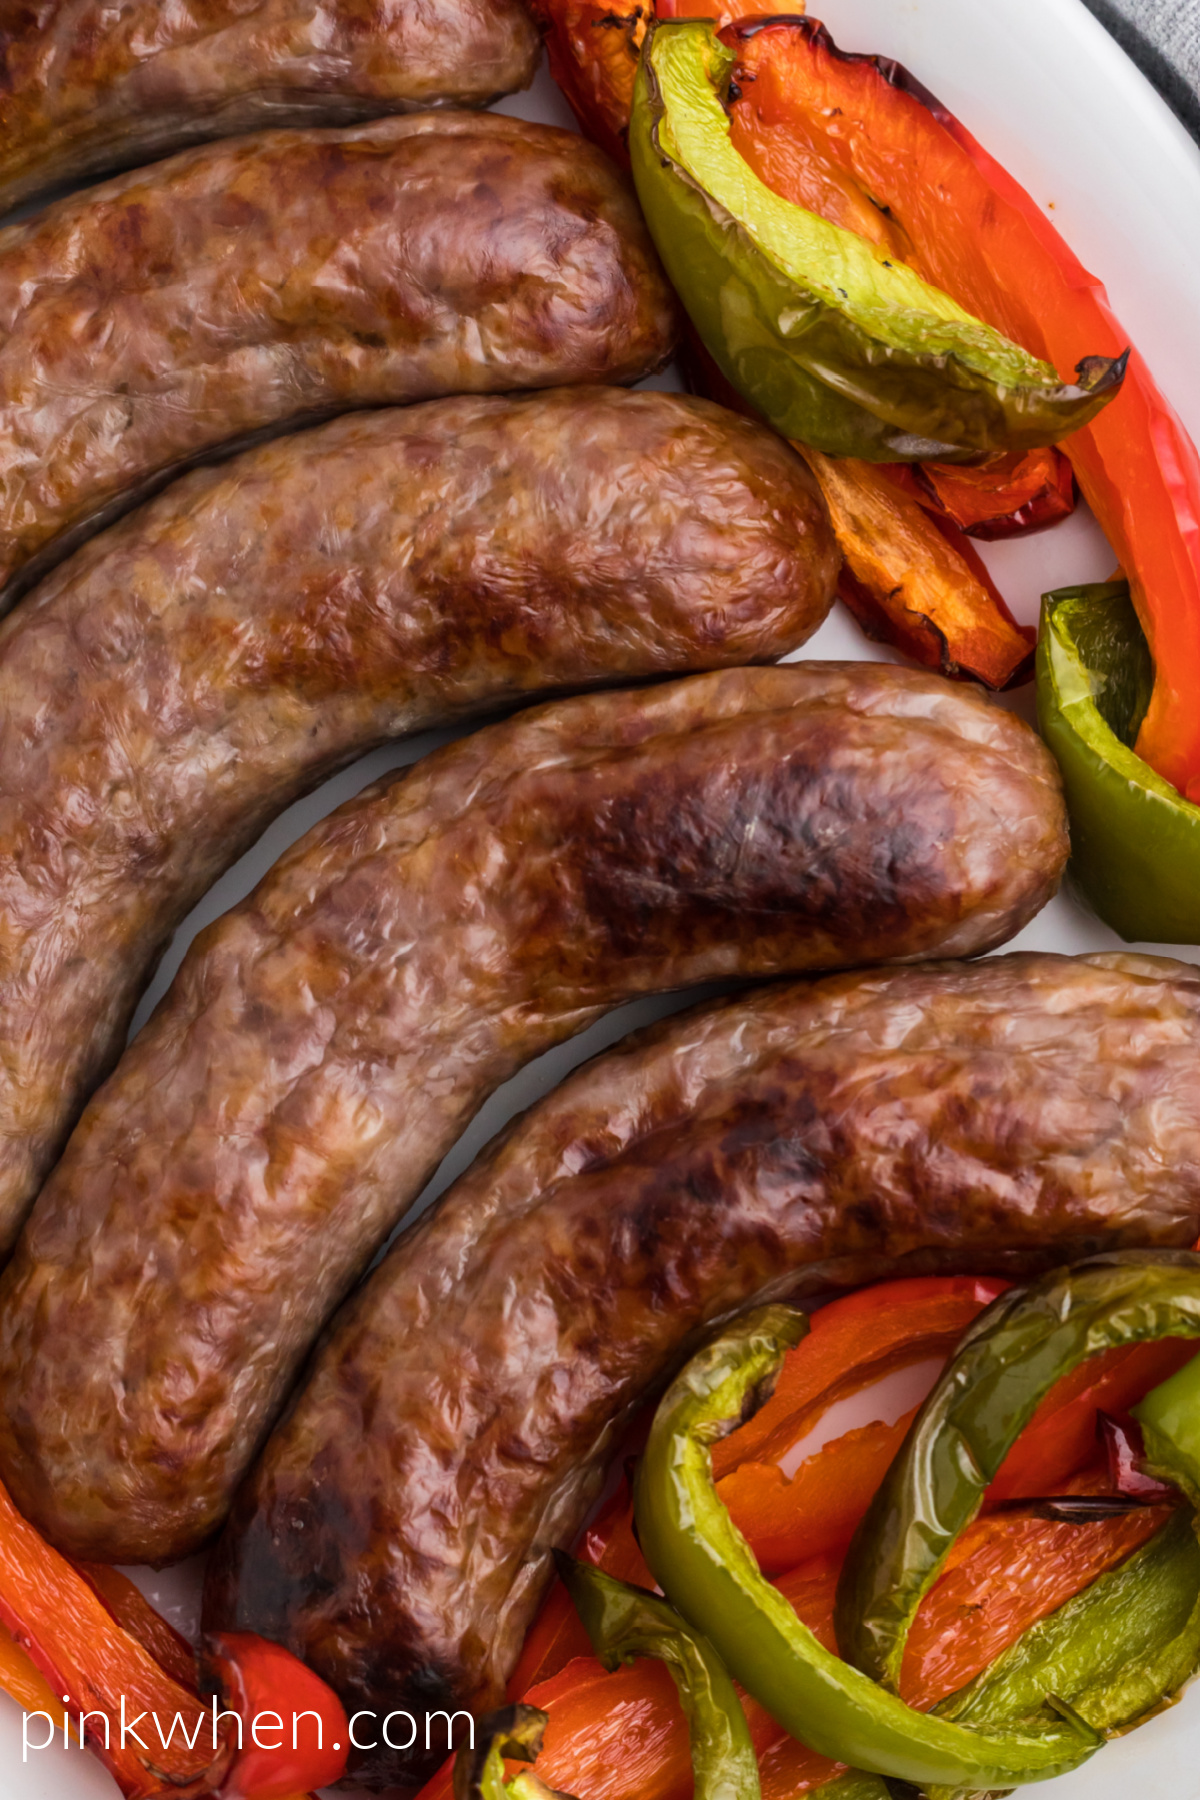 Close up photo of brats and peppers made in the air fryer and ready to eat.